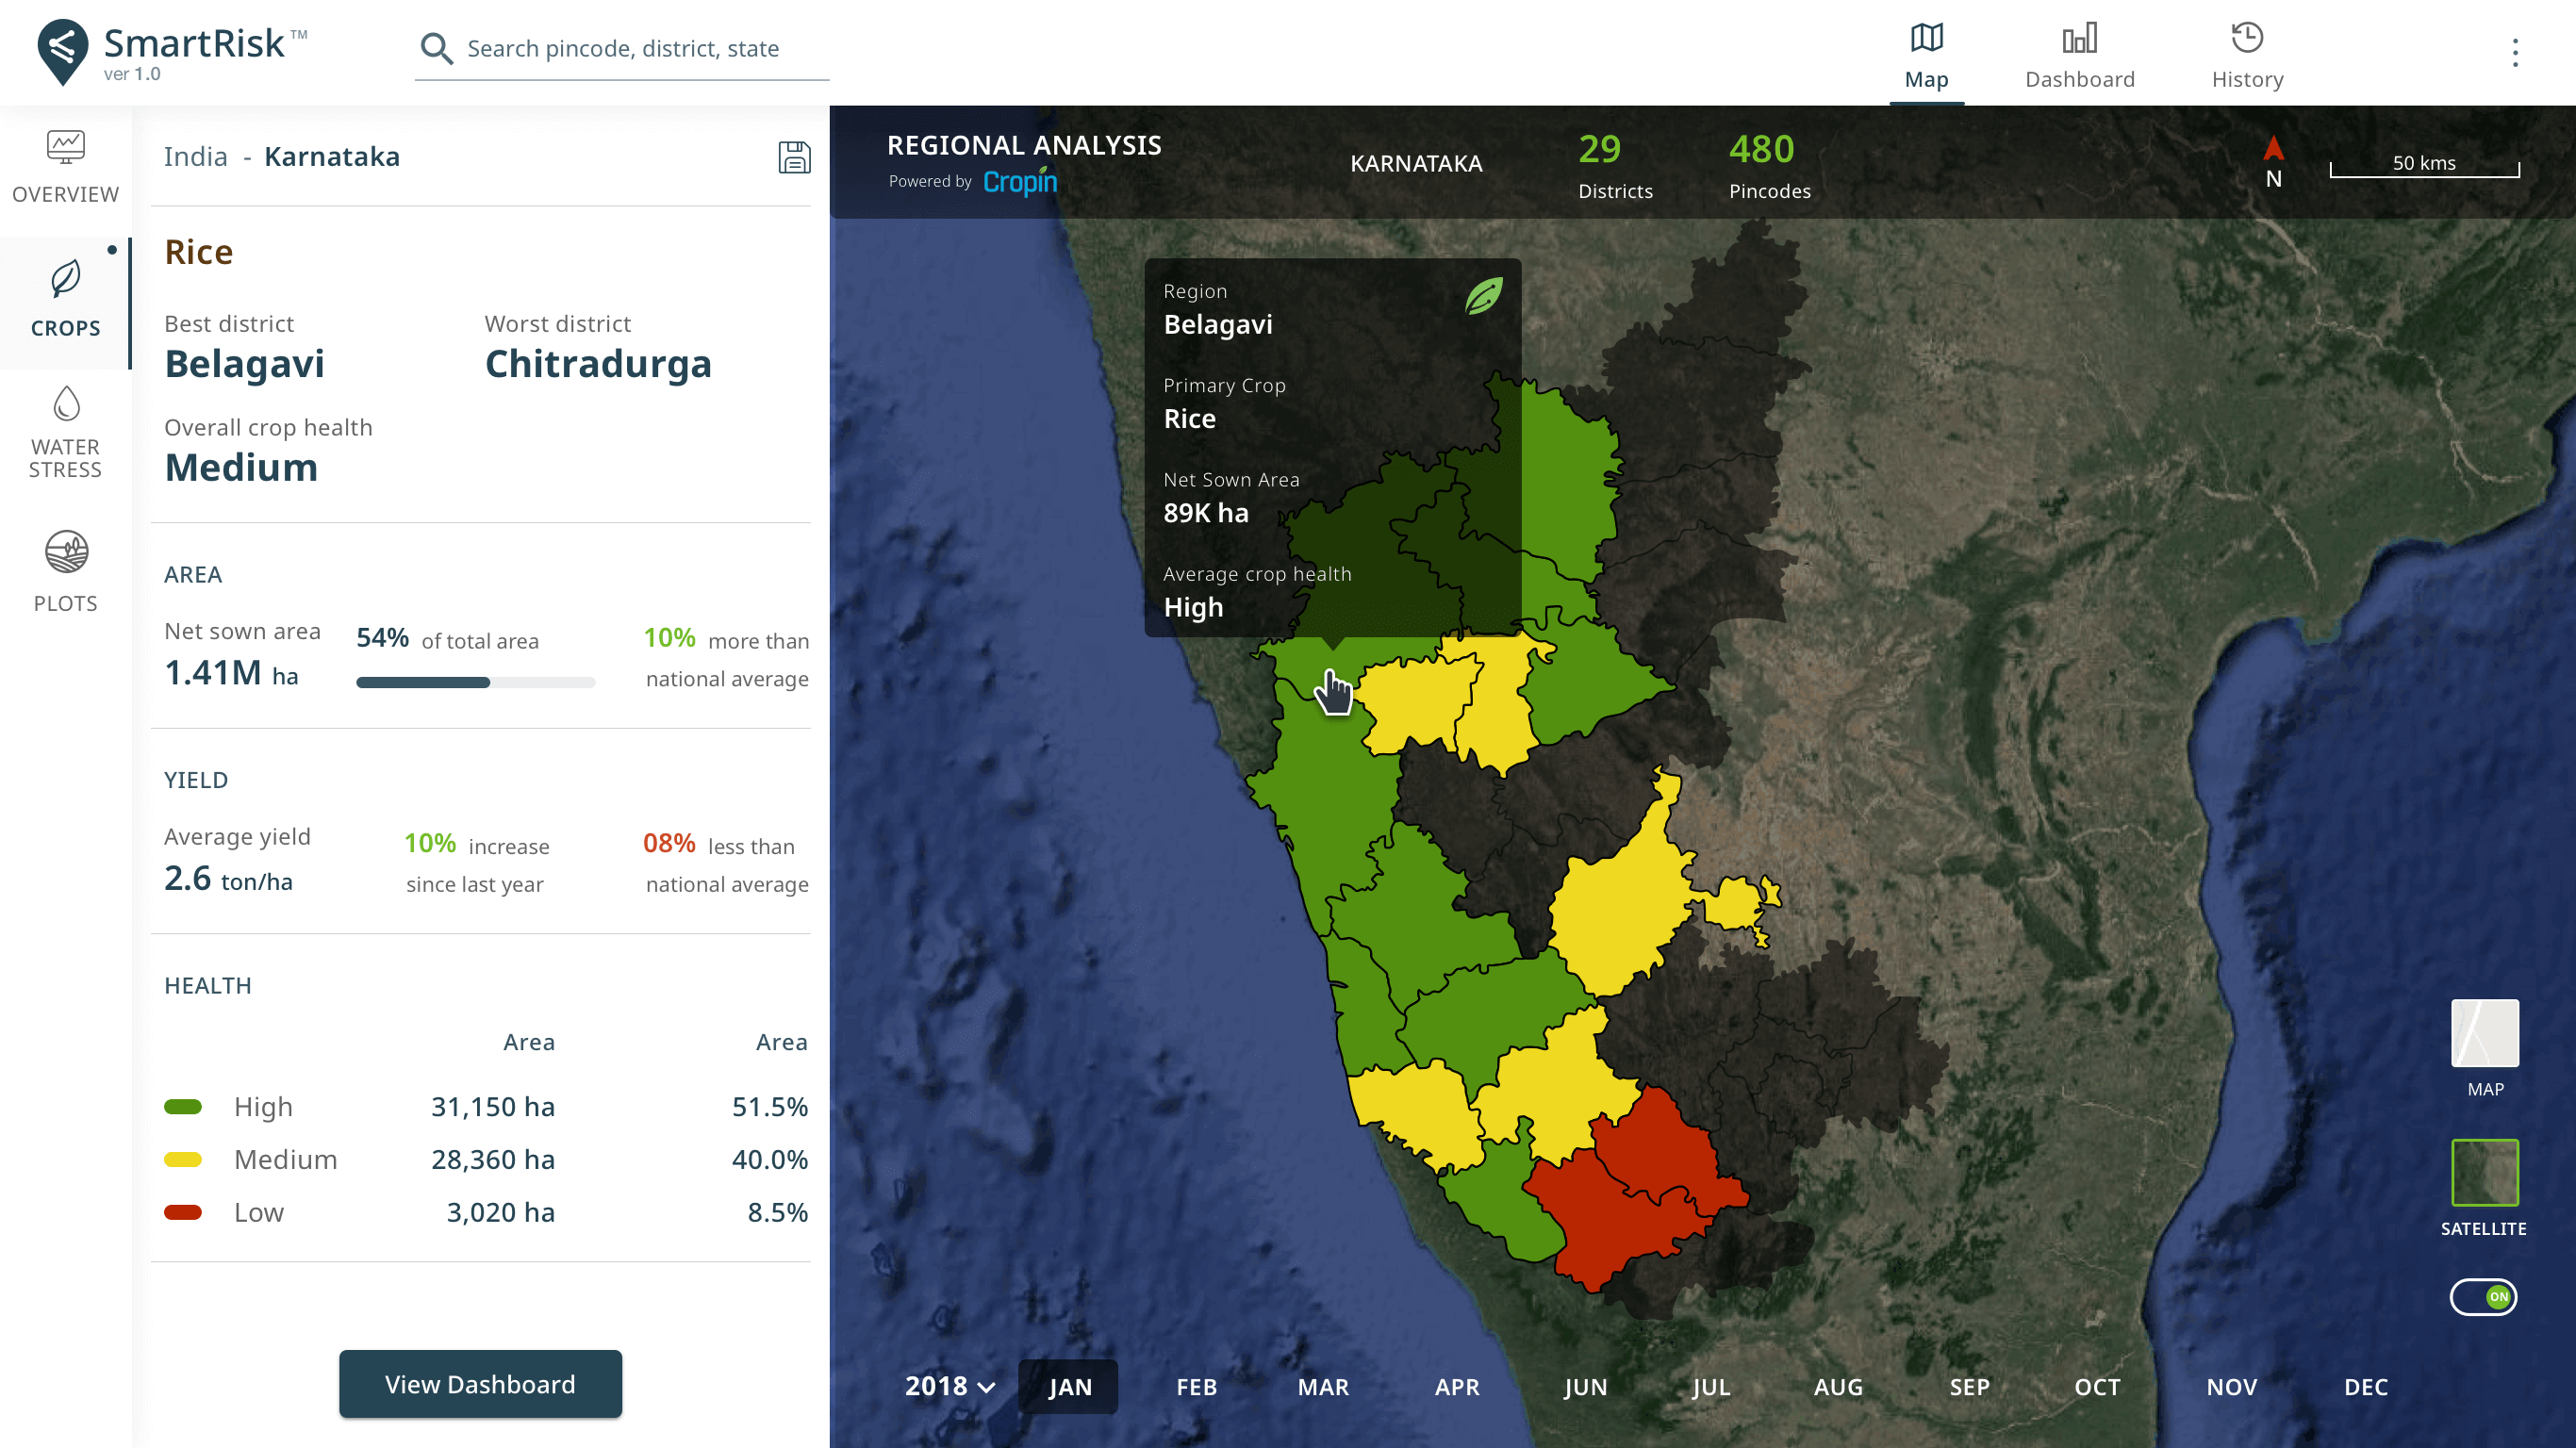 Representative image of SmartRisk Dashboard depicting district-wise analysis of crop health